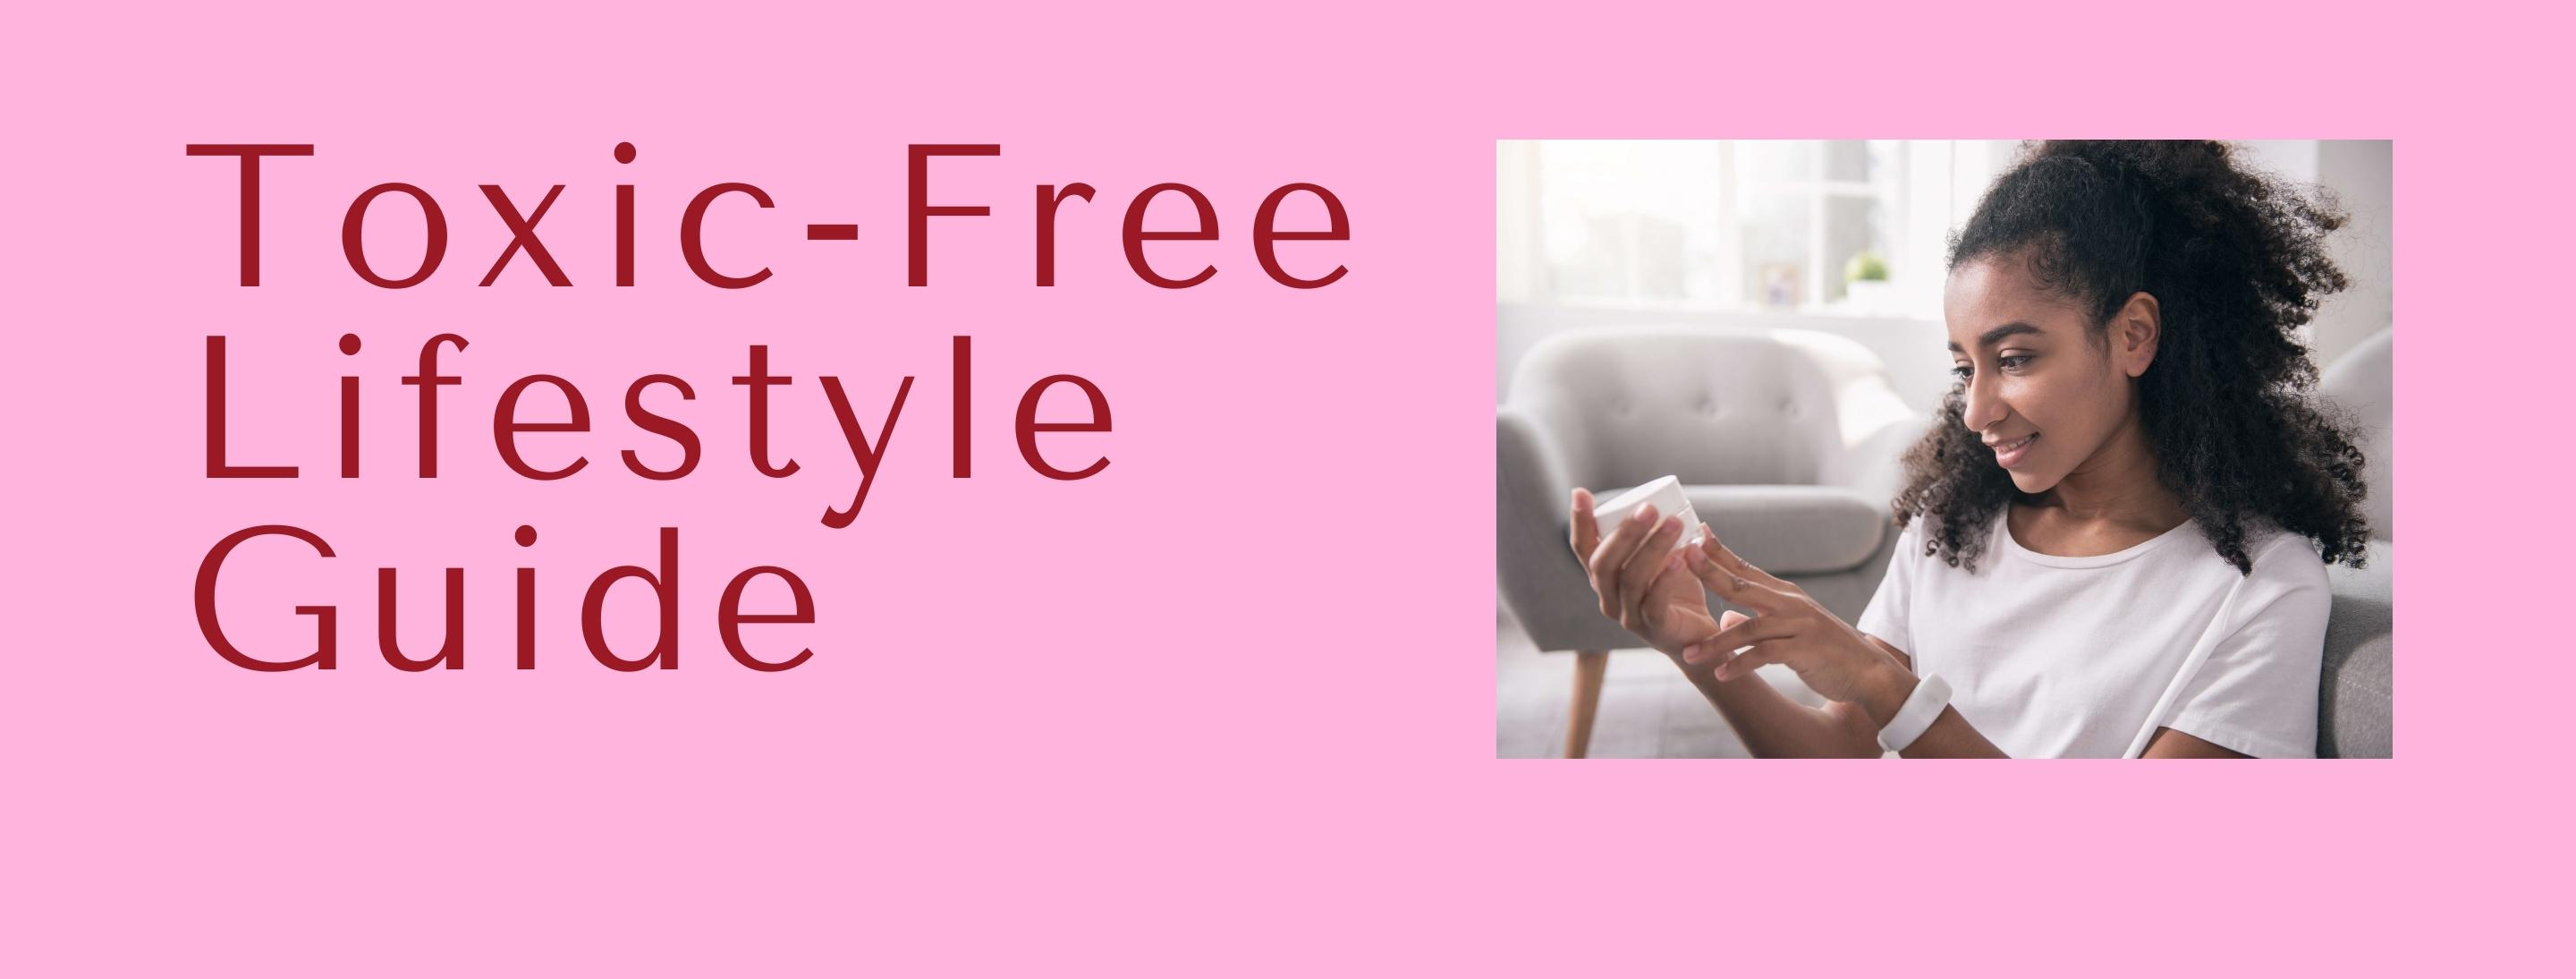 Toxic Free Lifestyle Guide